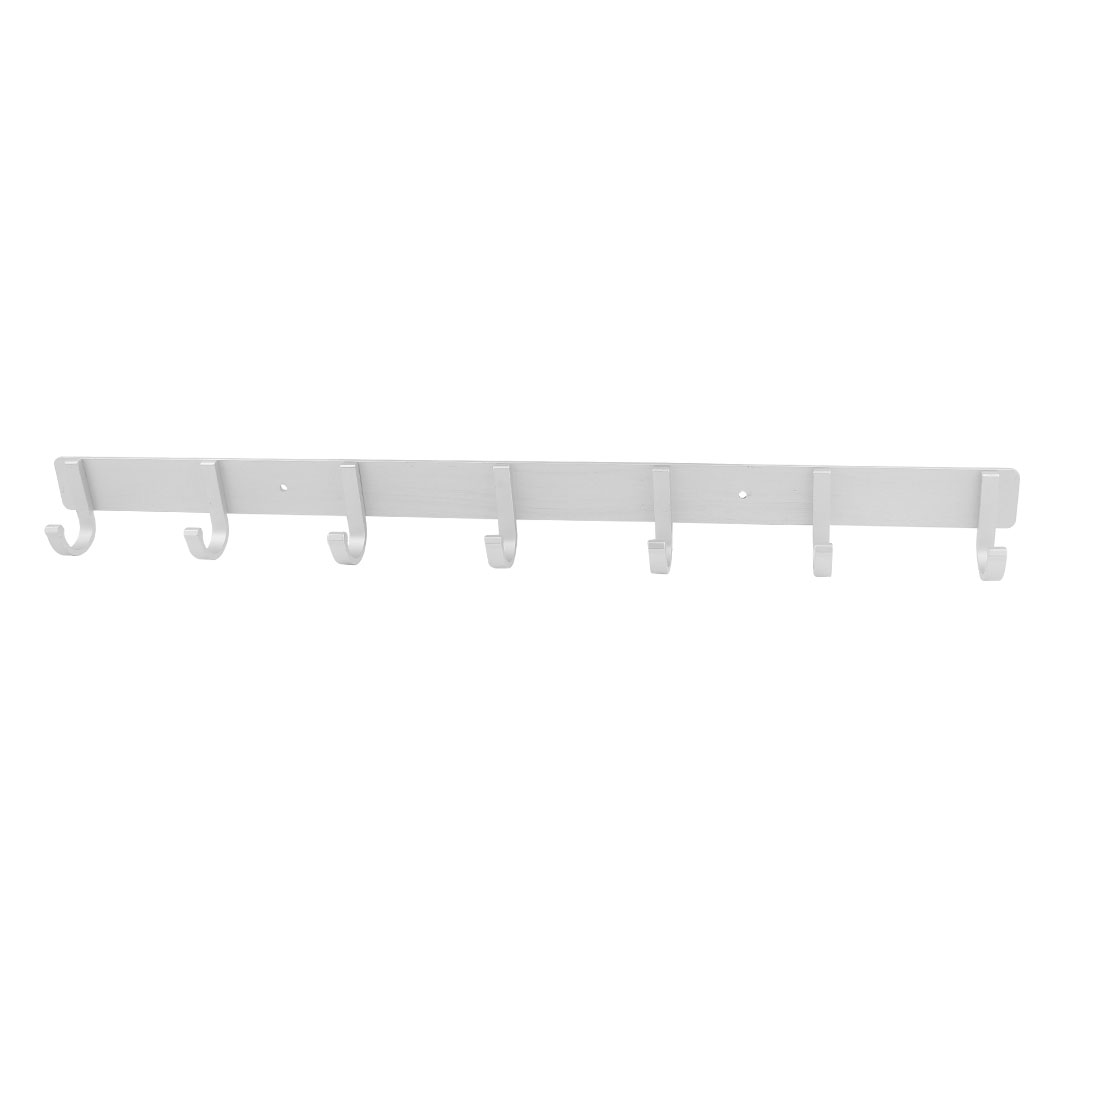 Silver Tone Aluminum Fixed 7-hook Wall Hanger Towel Clothes Hanging Rack 21""